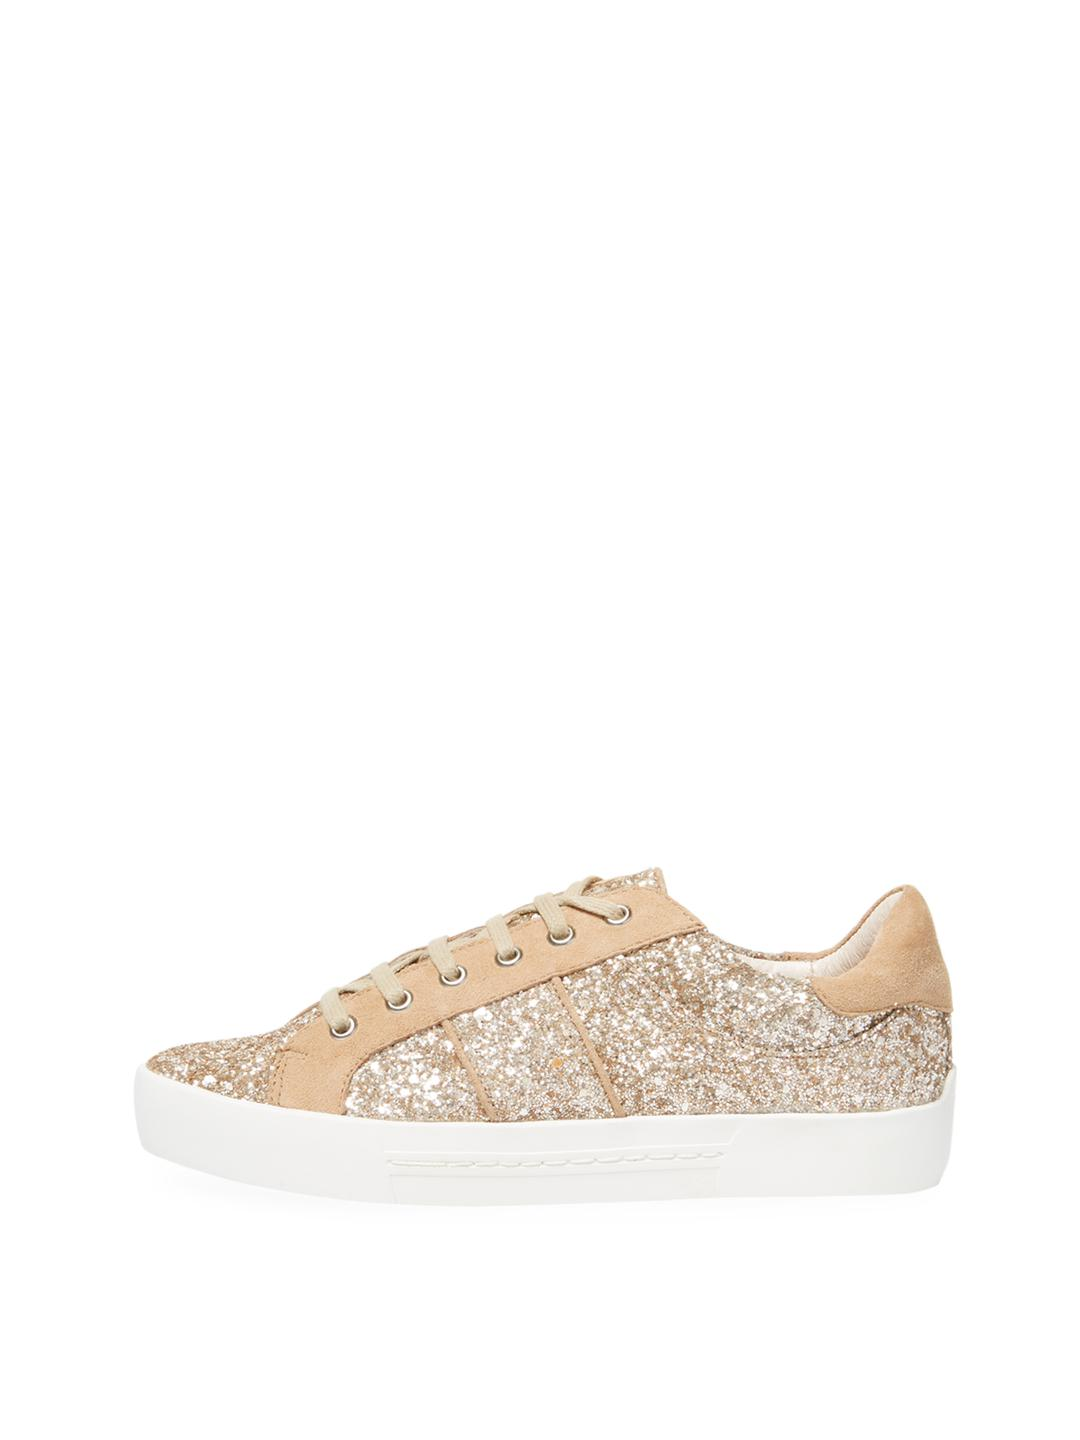 Joie Leather Dakota Low-top Sneaker